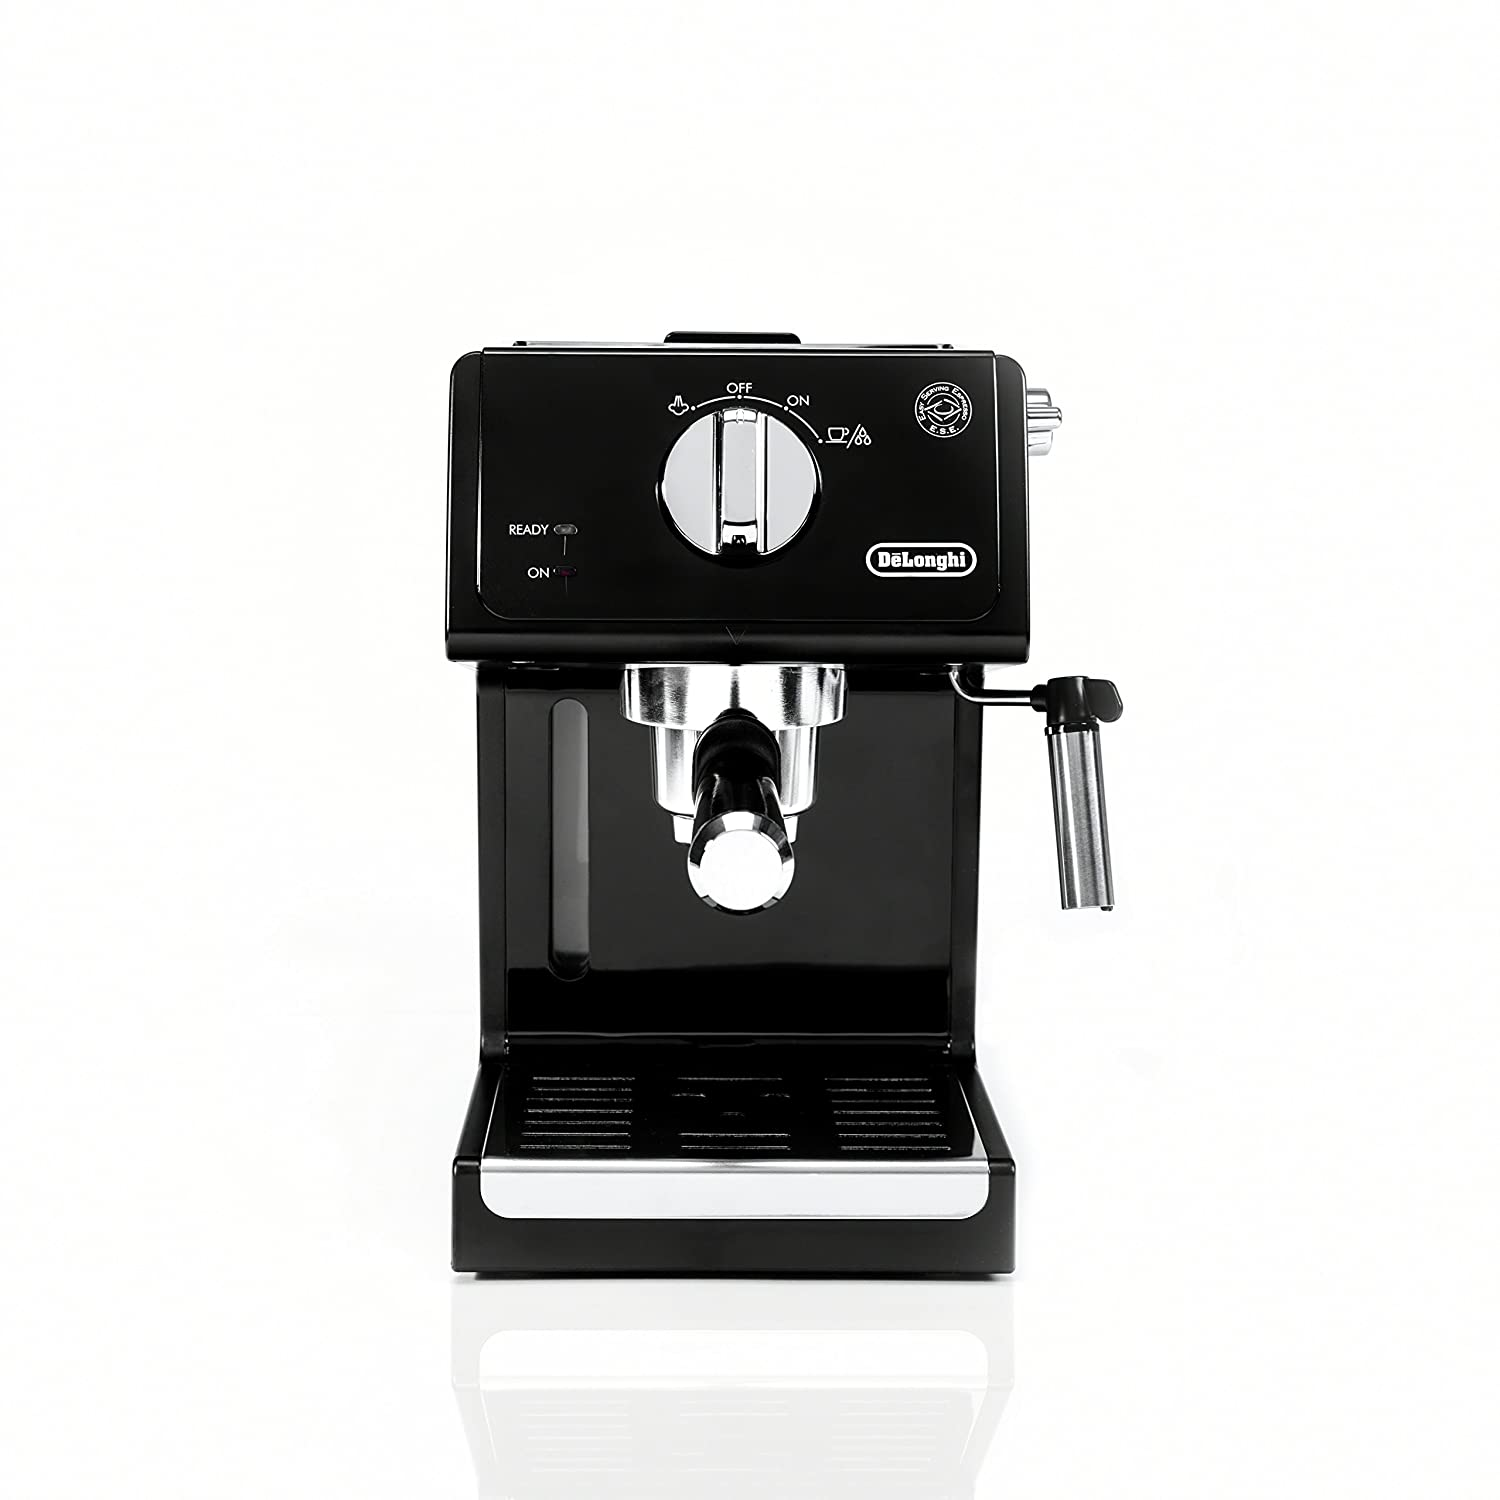 De'Longhi ECP3120 15 Bar Espresso Machine with Advanced Cappuccino System Black/Stainless Steel